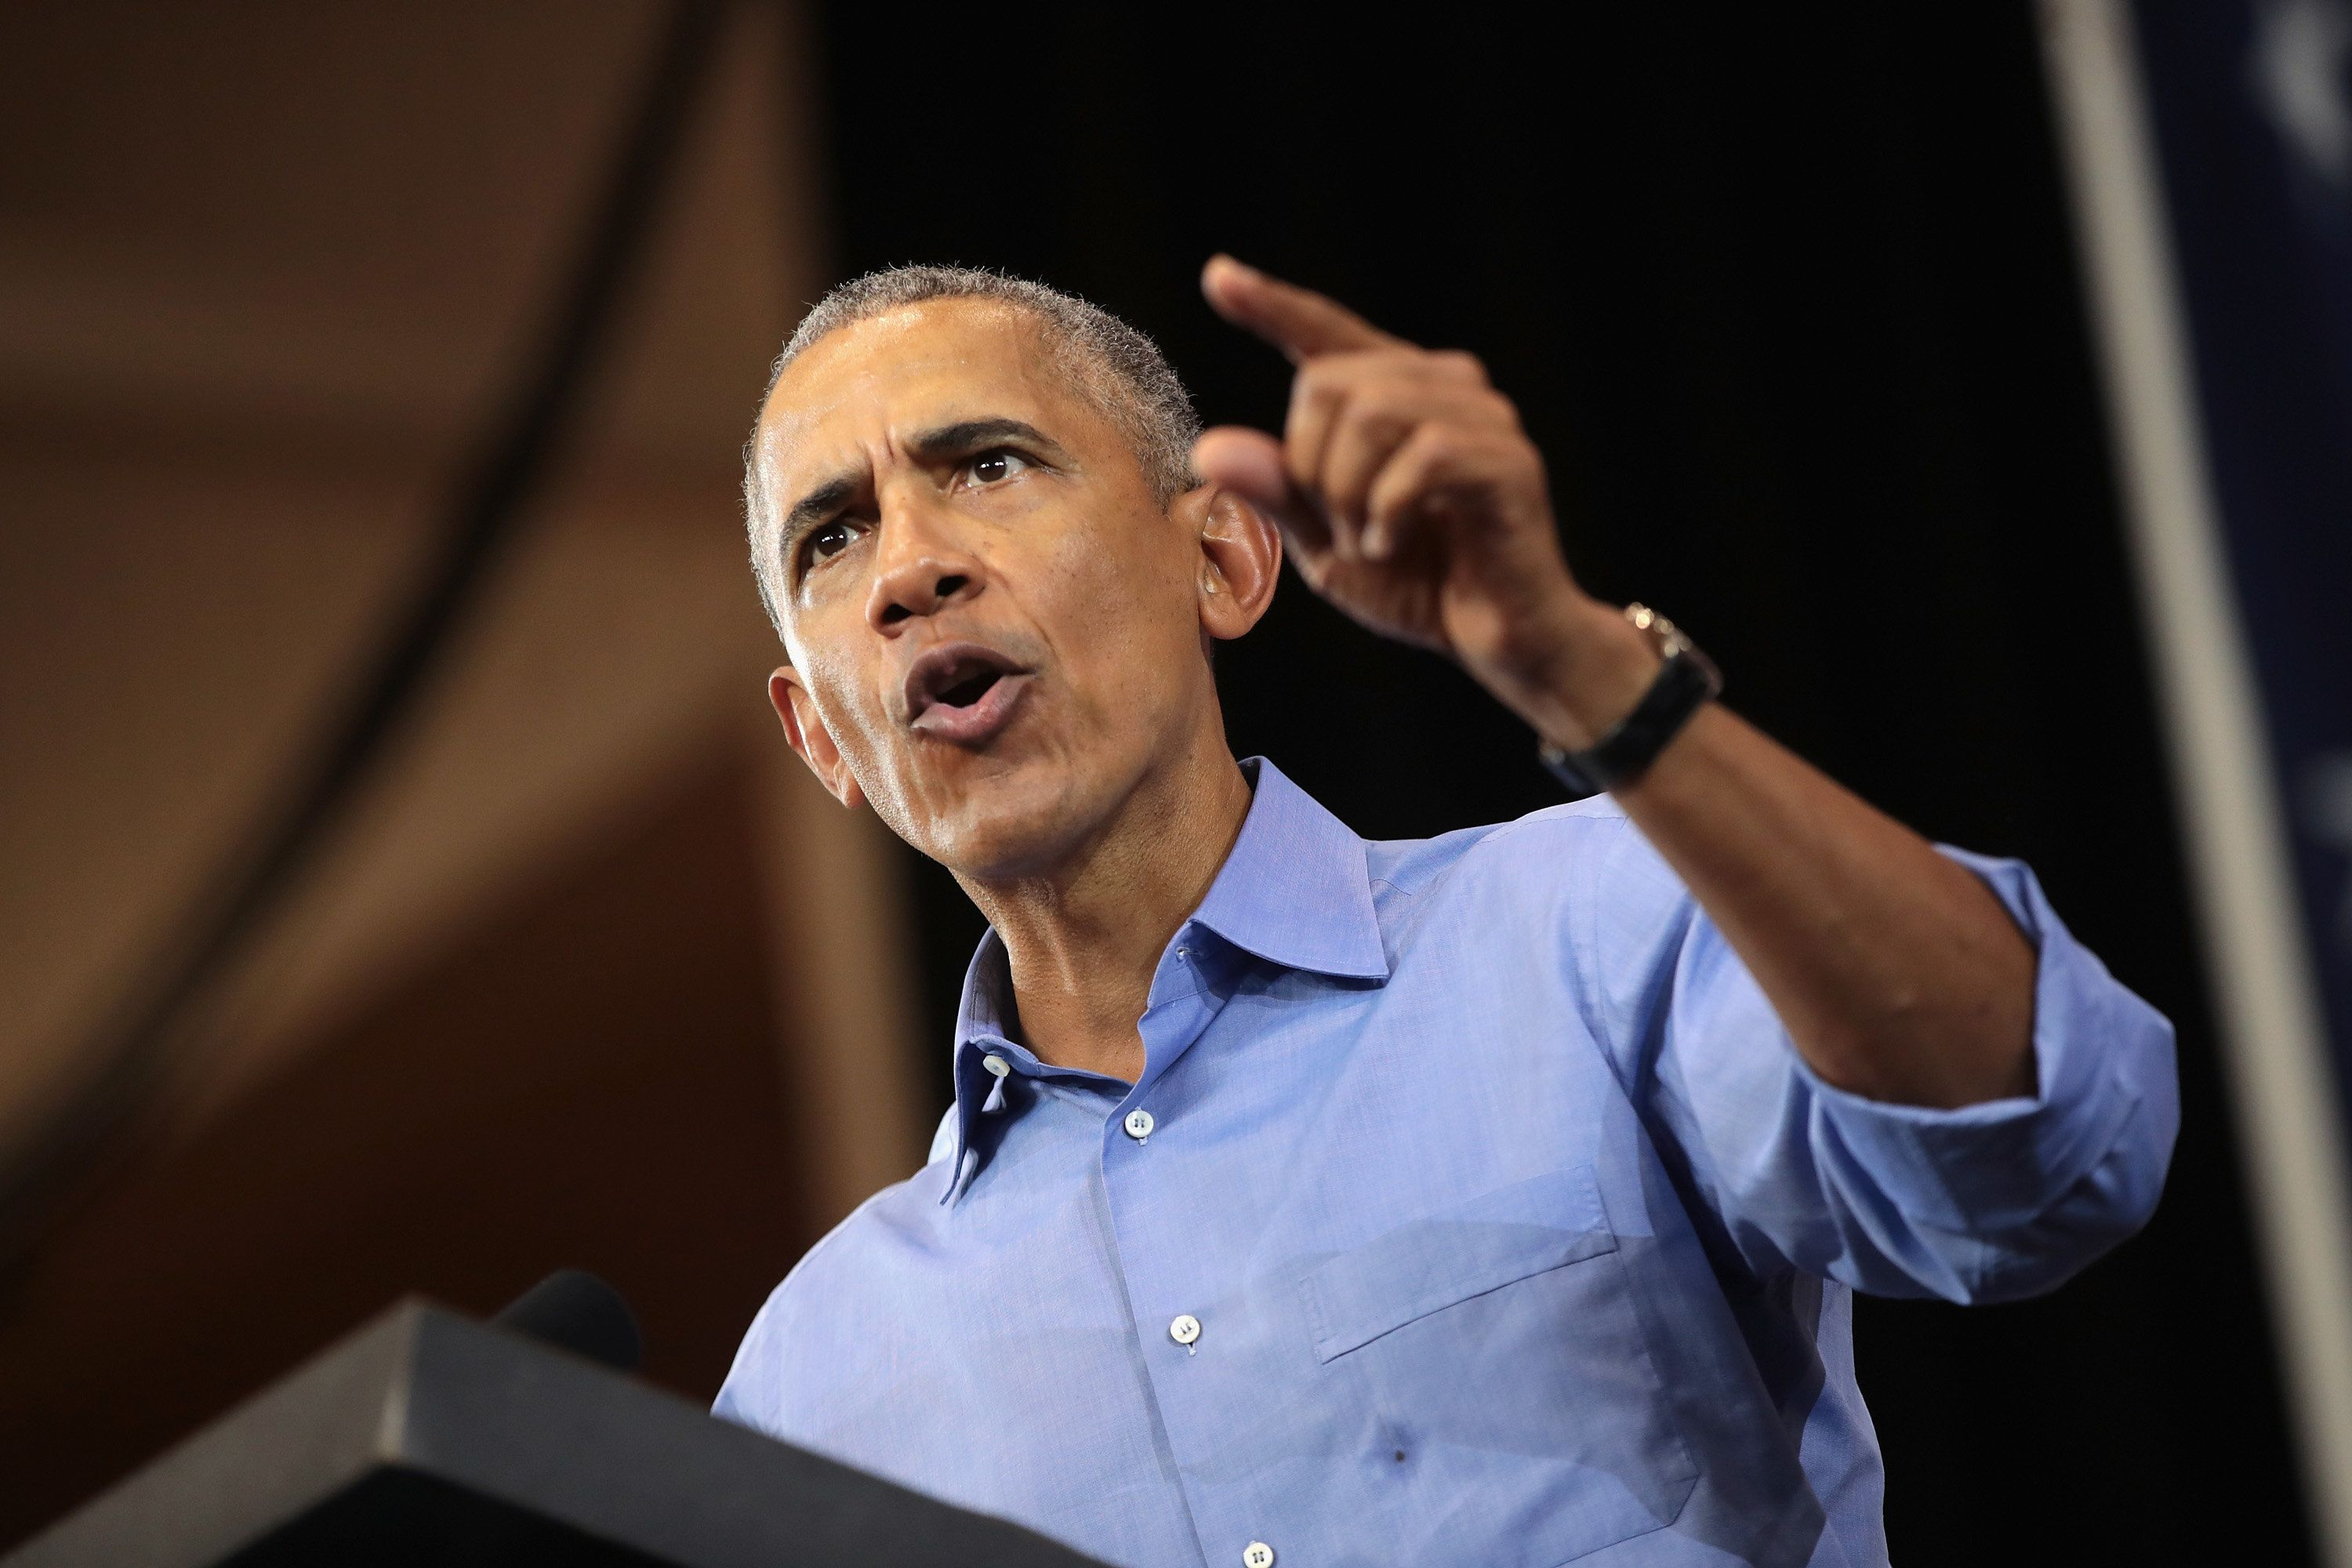 MILWAUKEE, WI - OCTOBER 26:  Former President Barack Obama campaigns for Wisconsin Democratic candidates during a rally at North Division High School on October 26, 2018 in Milwaukee, Wisconsin. About 3,500 people attended the capacity event and another 600 watched from an overflow space.  (Photo by Scott Olson/Getty Images)